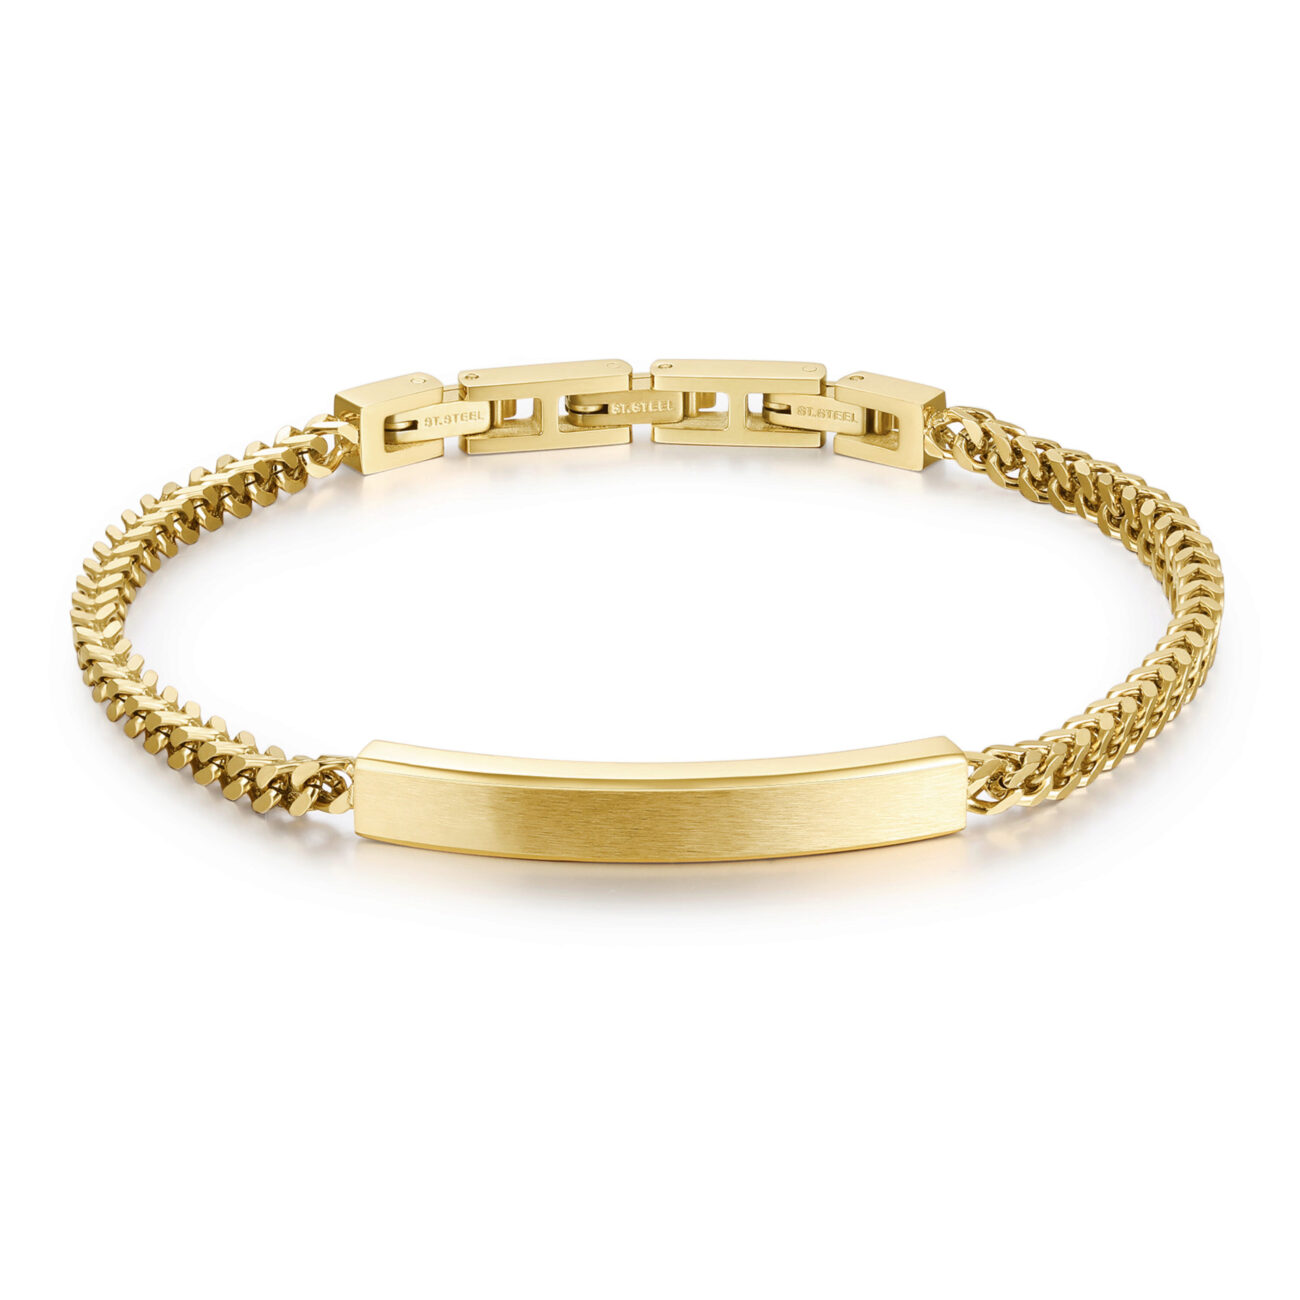 316L stainless steel bracelet and gold finishes.